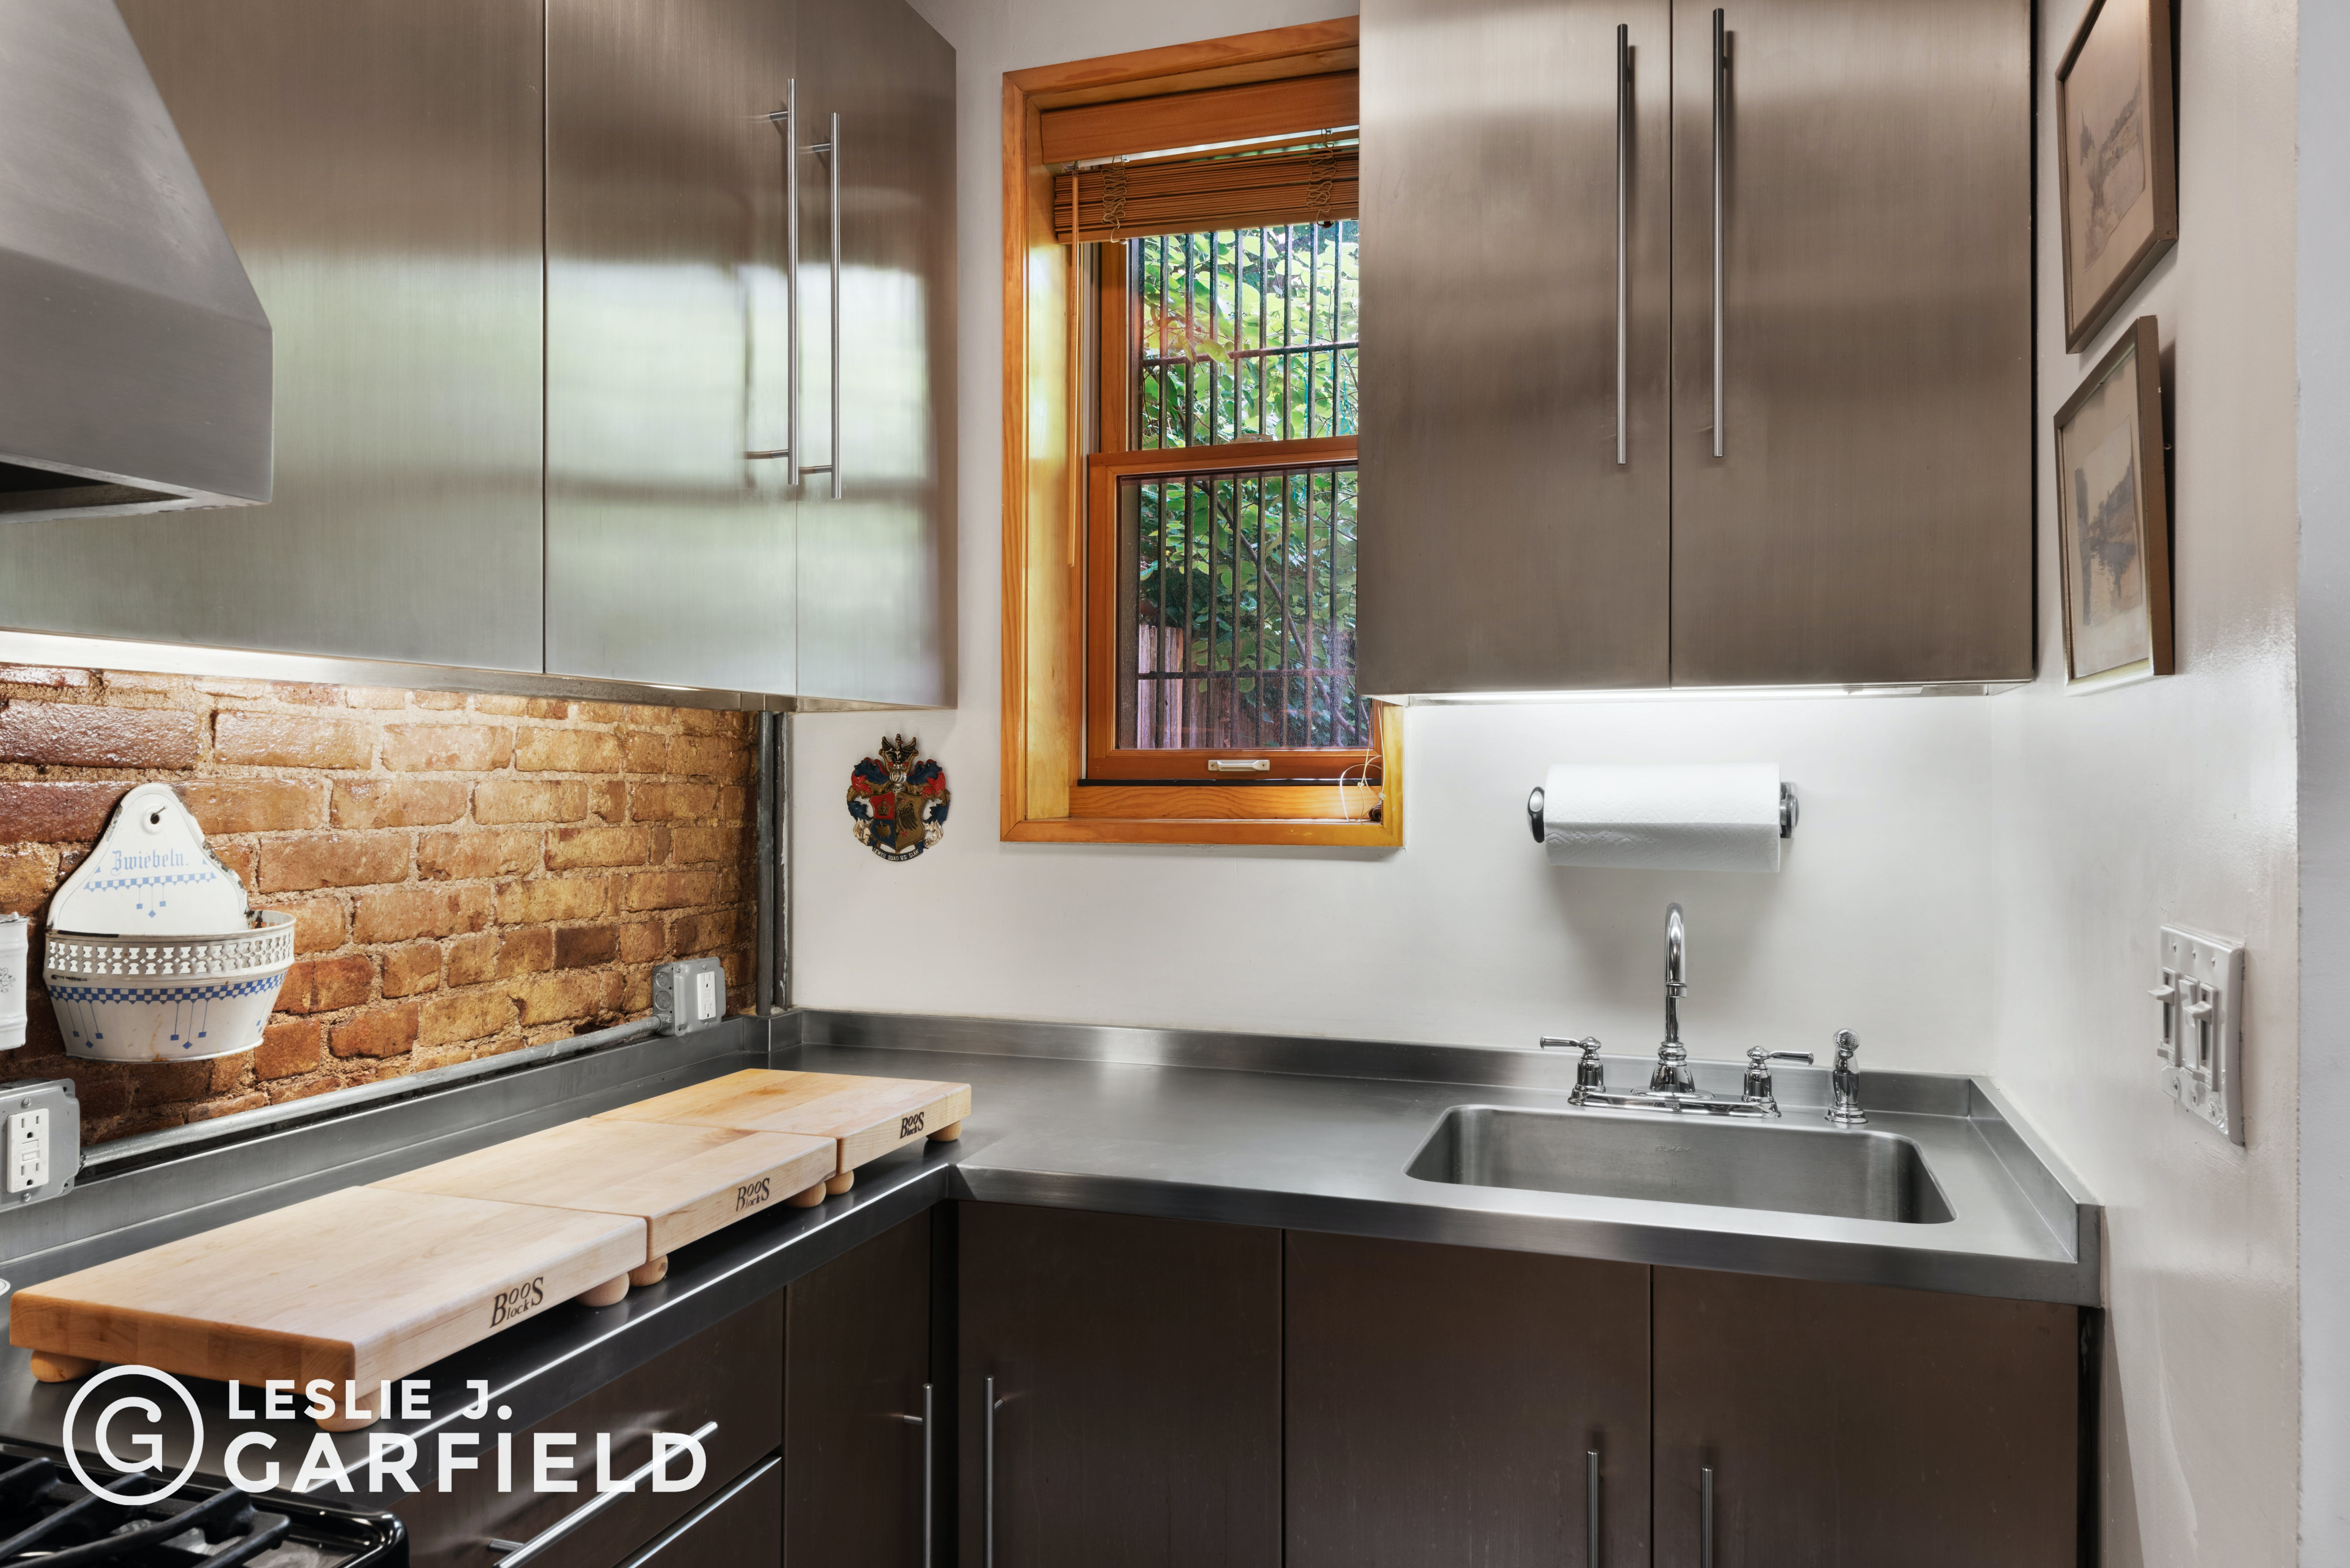 244 West 121st Street - 1dae02eb-dd72-426b-826d-0ece75c02207 - New York City Townhouse Real Estate